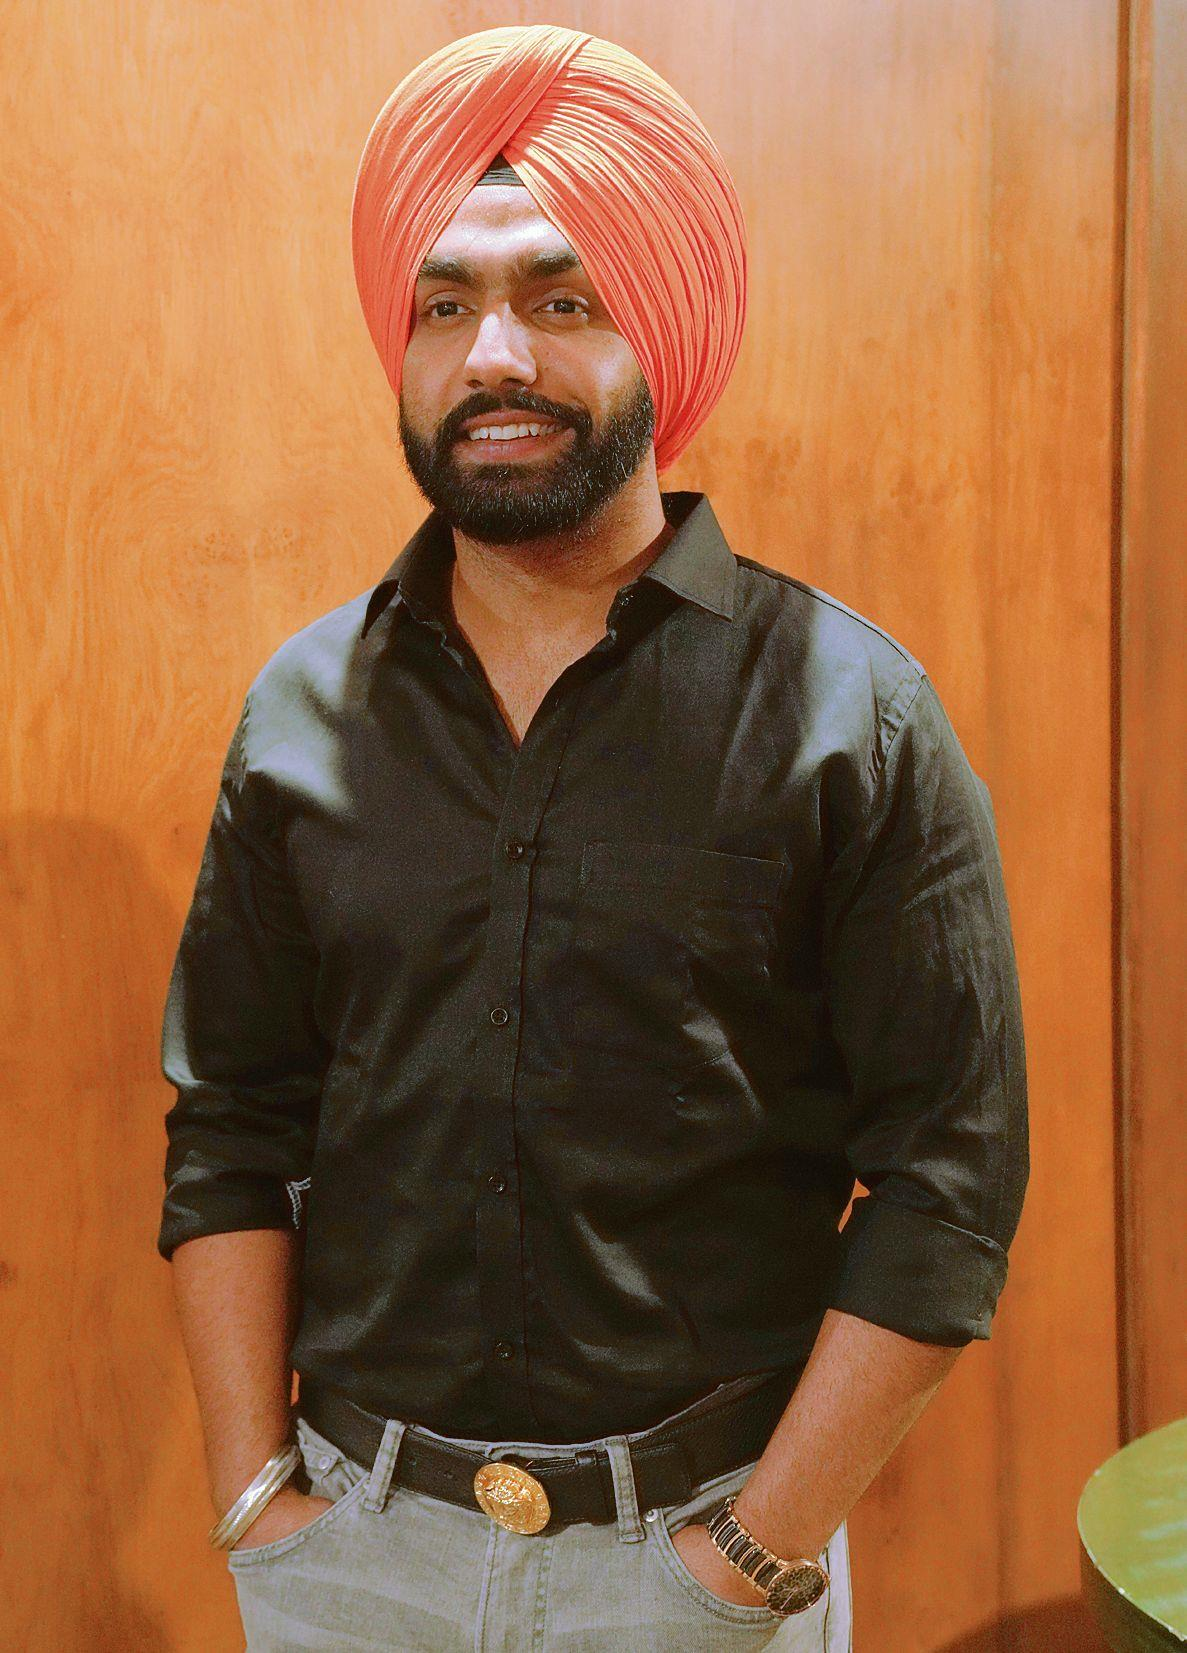 As more and more Punjabi actors turn producers, they share how the workload has increased yet the satisfaction levels have gone higher too